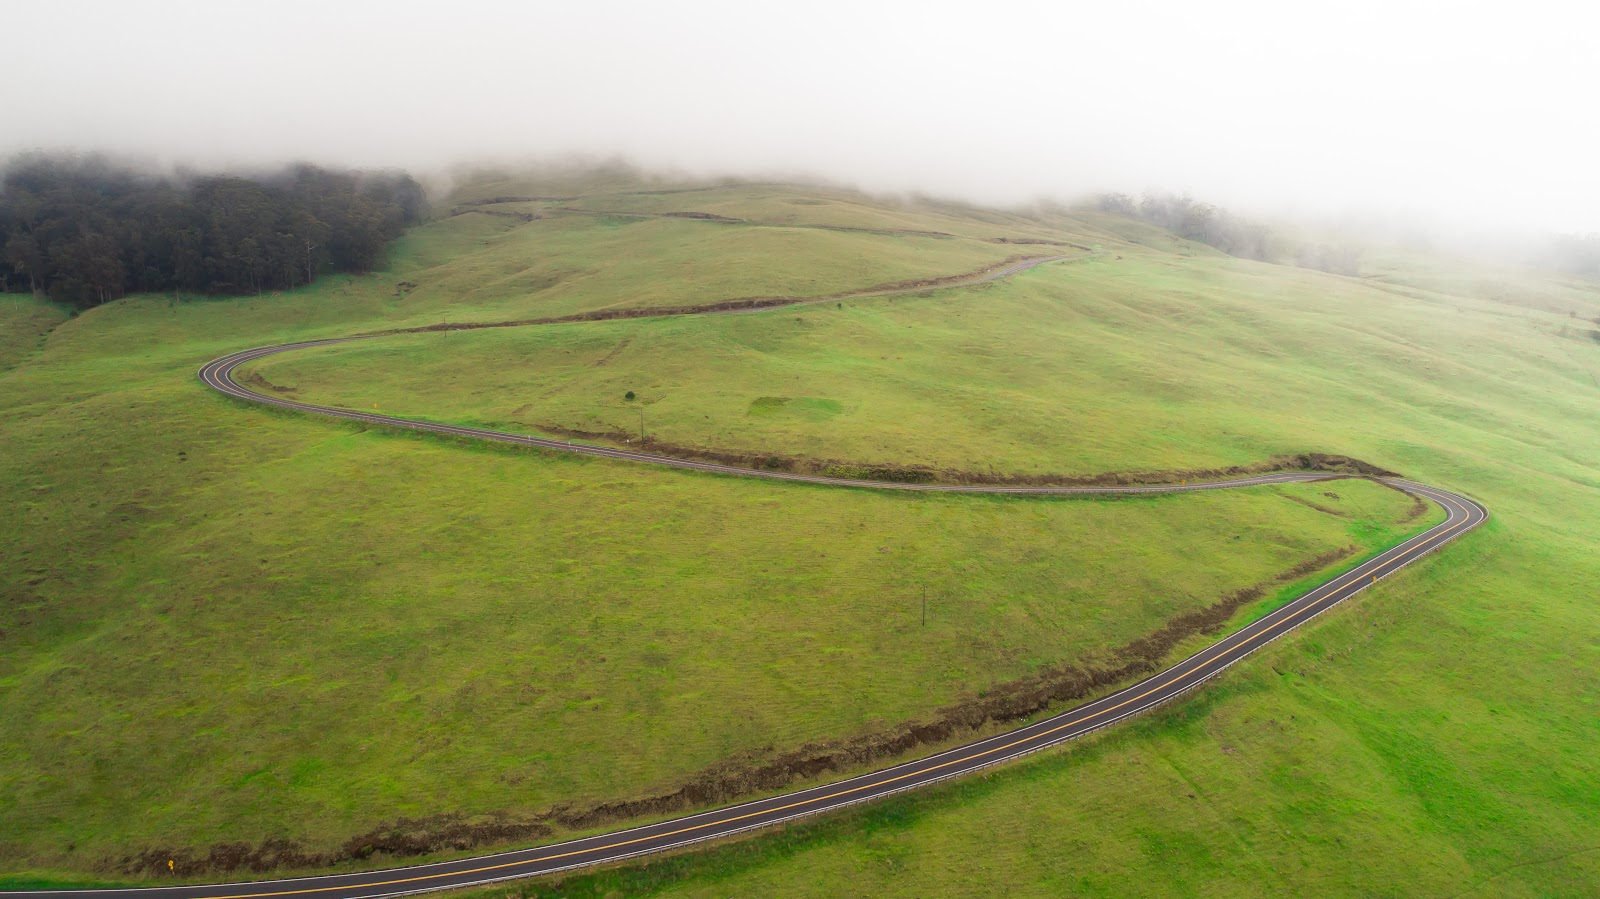 Cycling Haleakala Volcano - aerial drone photo of hairpin curve, green grass and roadway